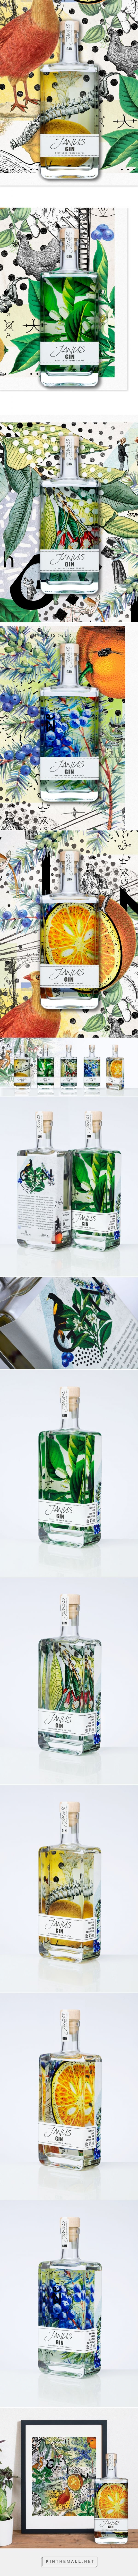 Janus Gin packaging design by LINEA - http://www.packagingoftheworld.com/2018/01/janus-gin.html